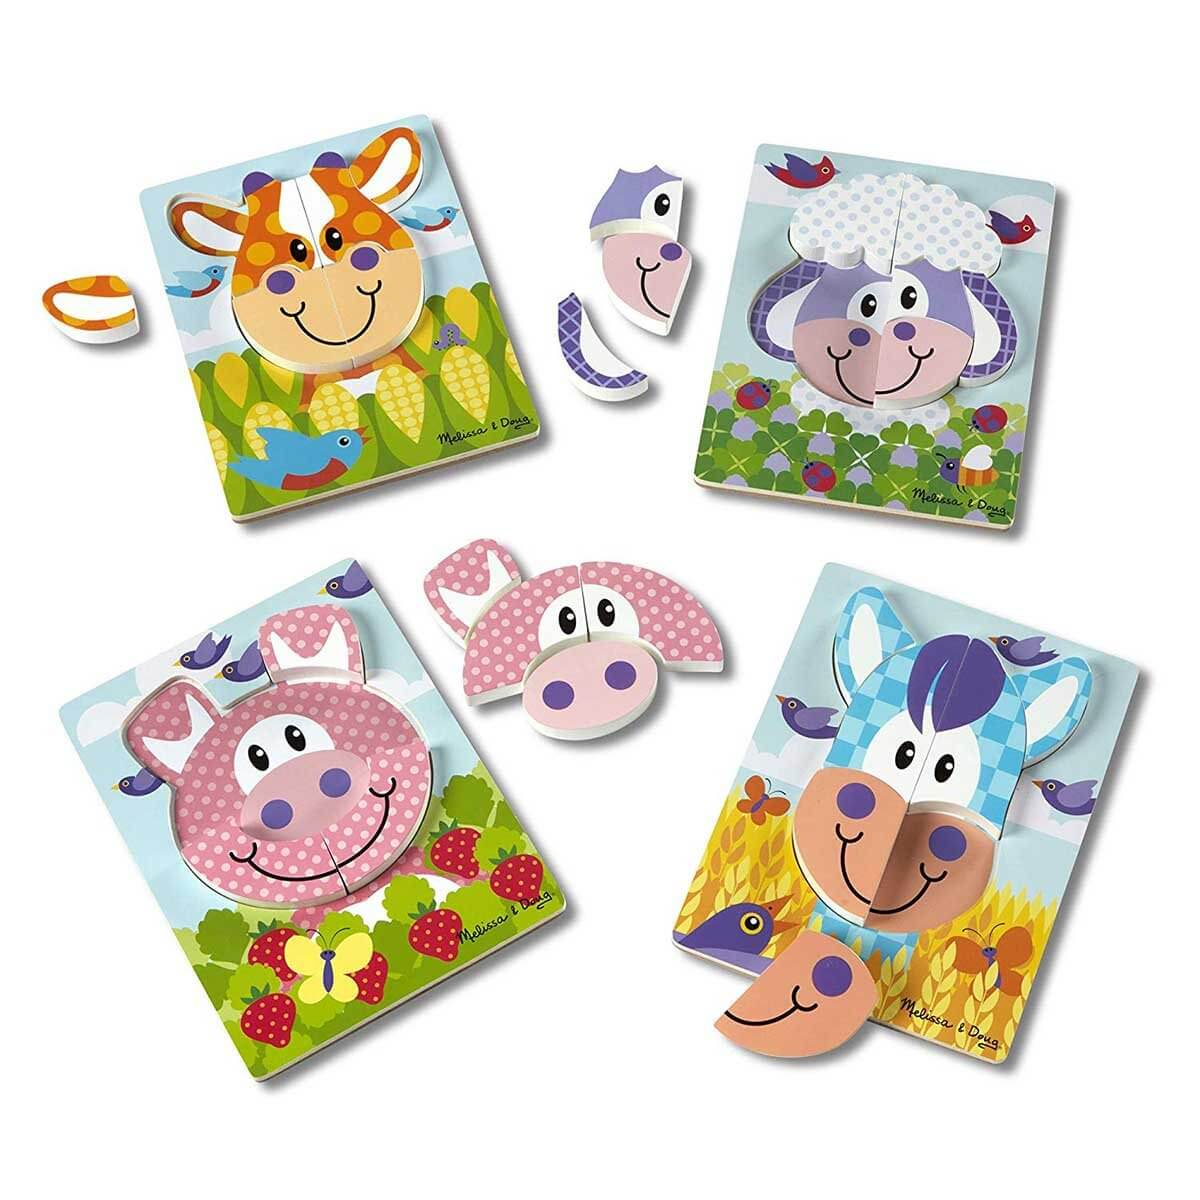 FIRST PLAY JIGSAW SET - FARM